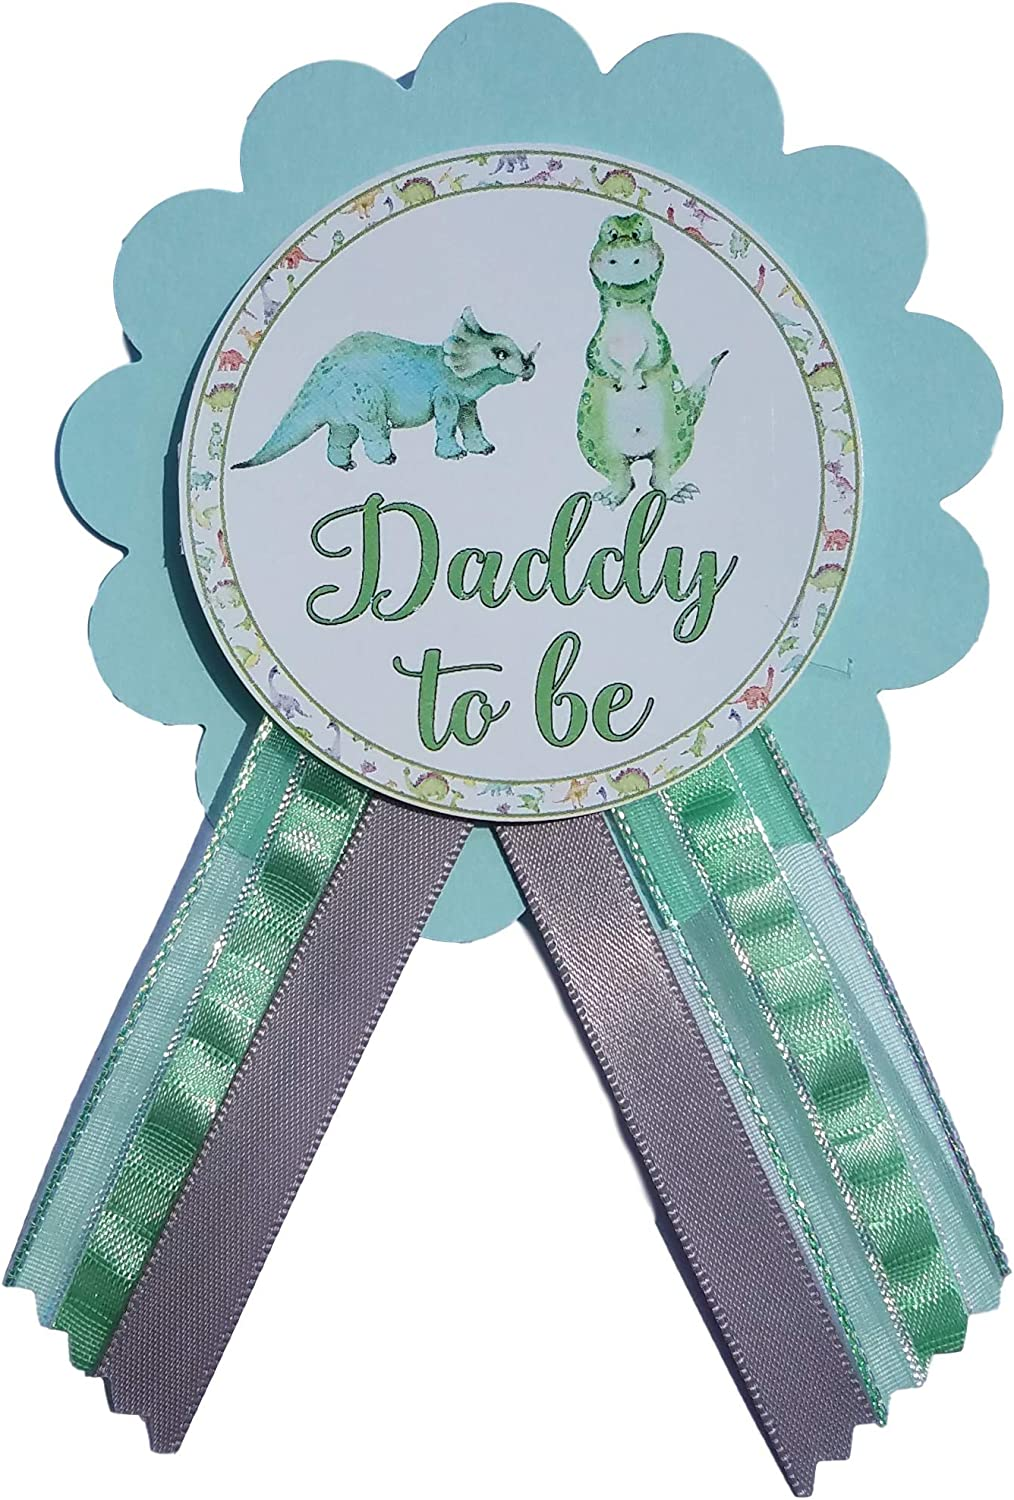 1 dad 1 mom and 17 guest Baby dino-themed baby shower pins